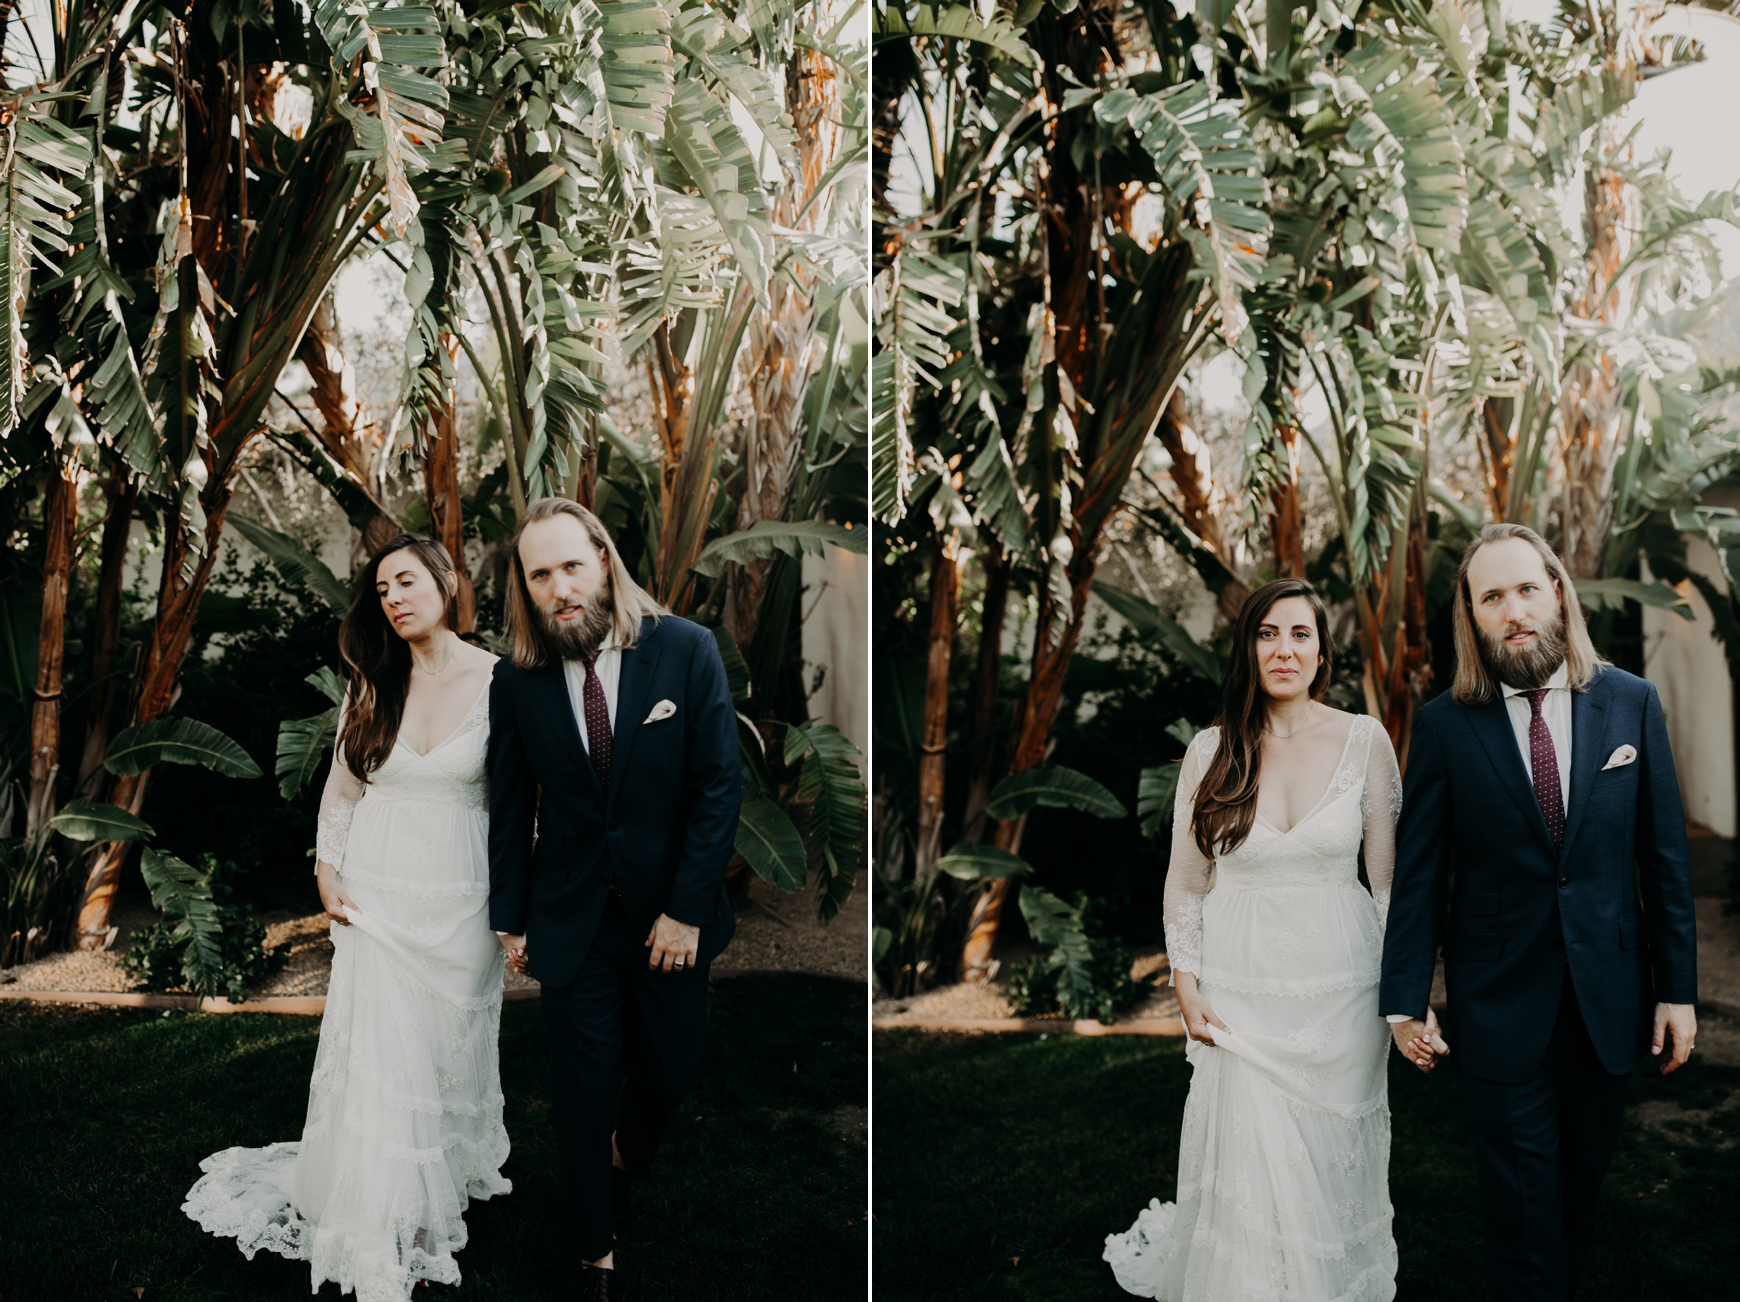 The Colony Palms Hotel Palm Springs Wedding Jaclyn & Tyson Emily Magers Photography-388.jpg